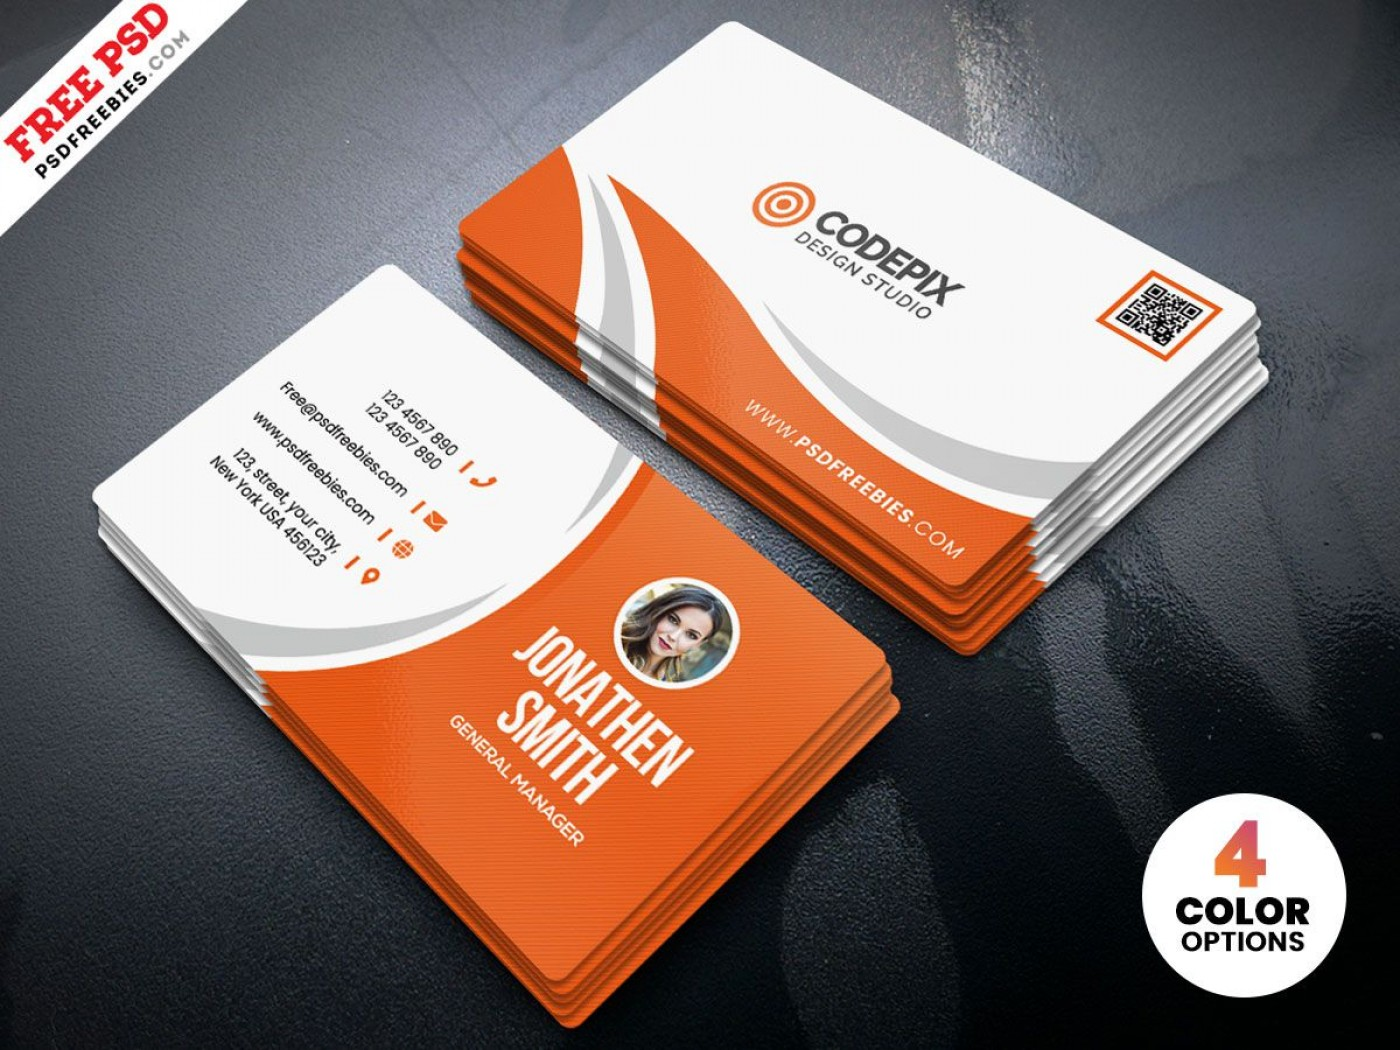 008 Unusual Simple Busines Card Template Psd Highest Quality  Design In Photoshop Minimalist Free1400